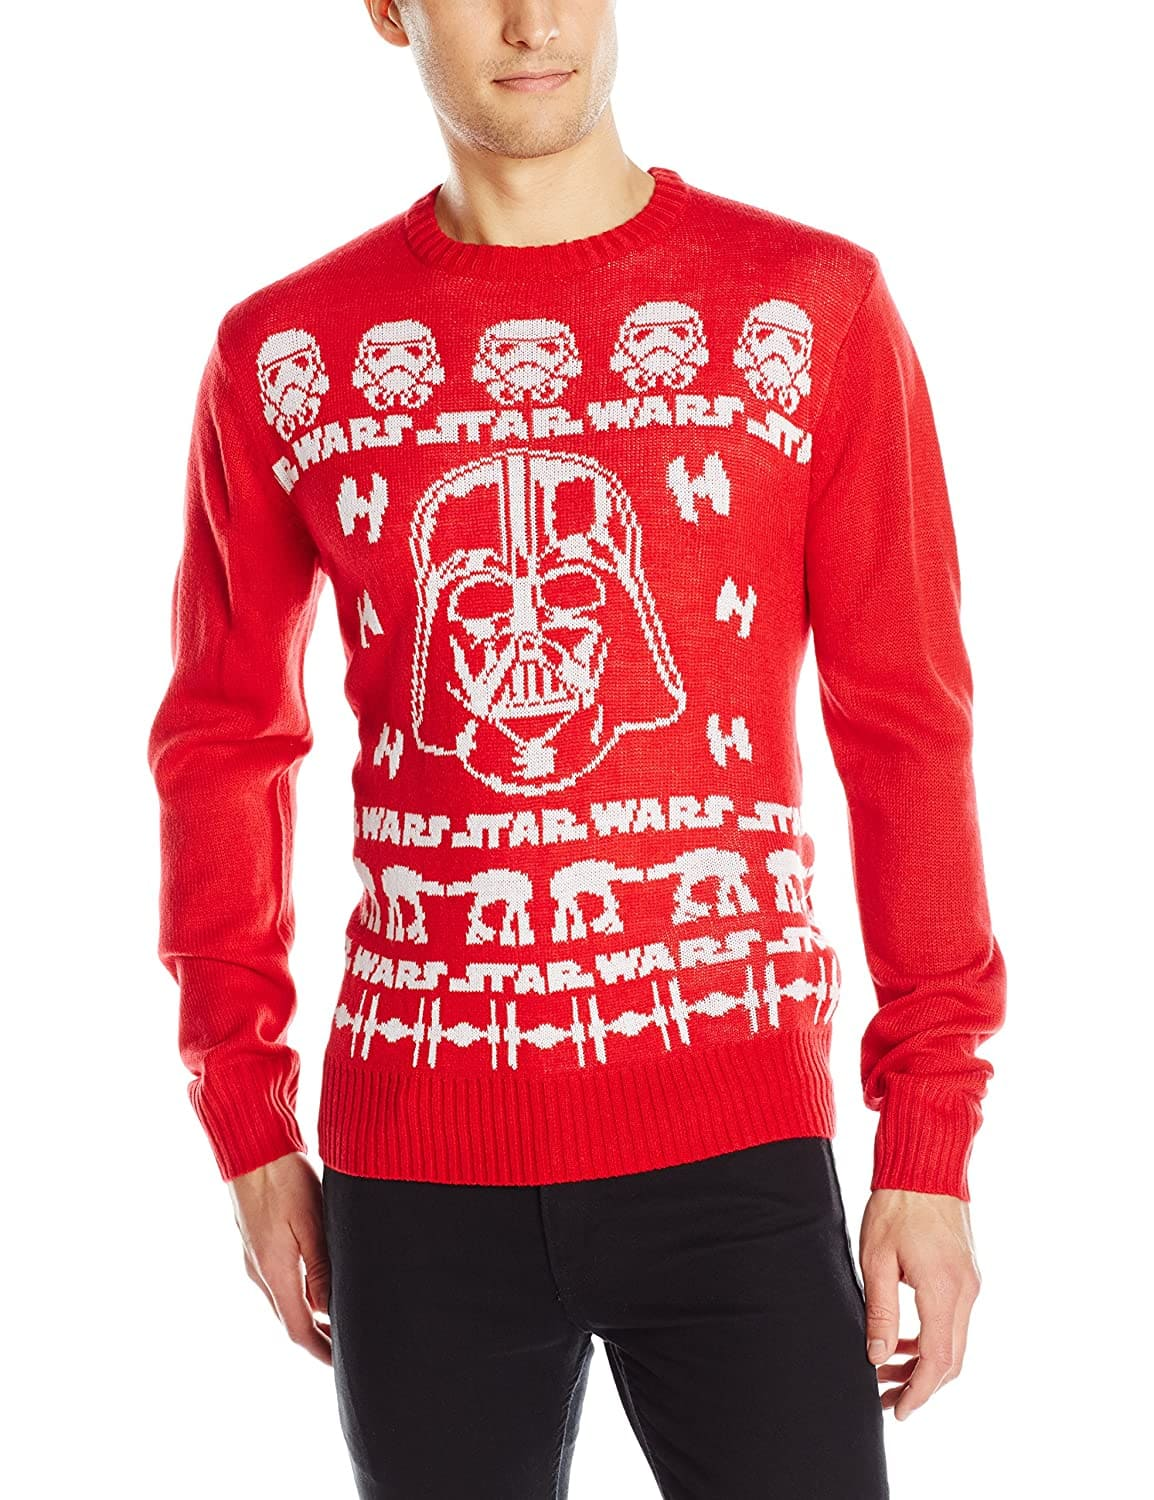 Star Wars Men's Ugly Christmas Sweater (LGE. Red) $4.74 | (LGE Black) $5.14 - Amazon